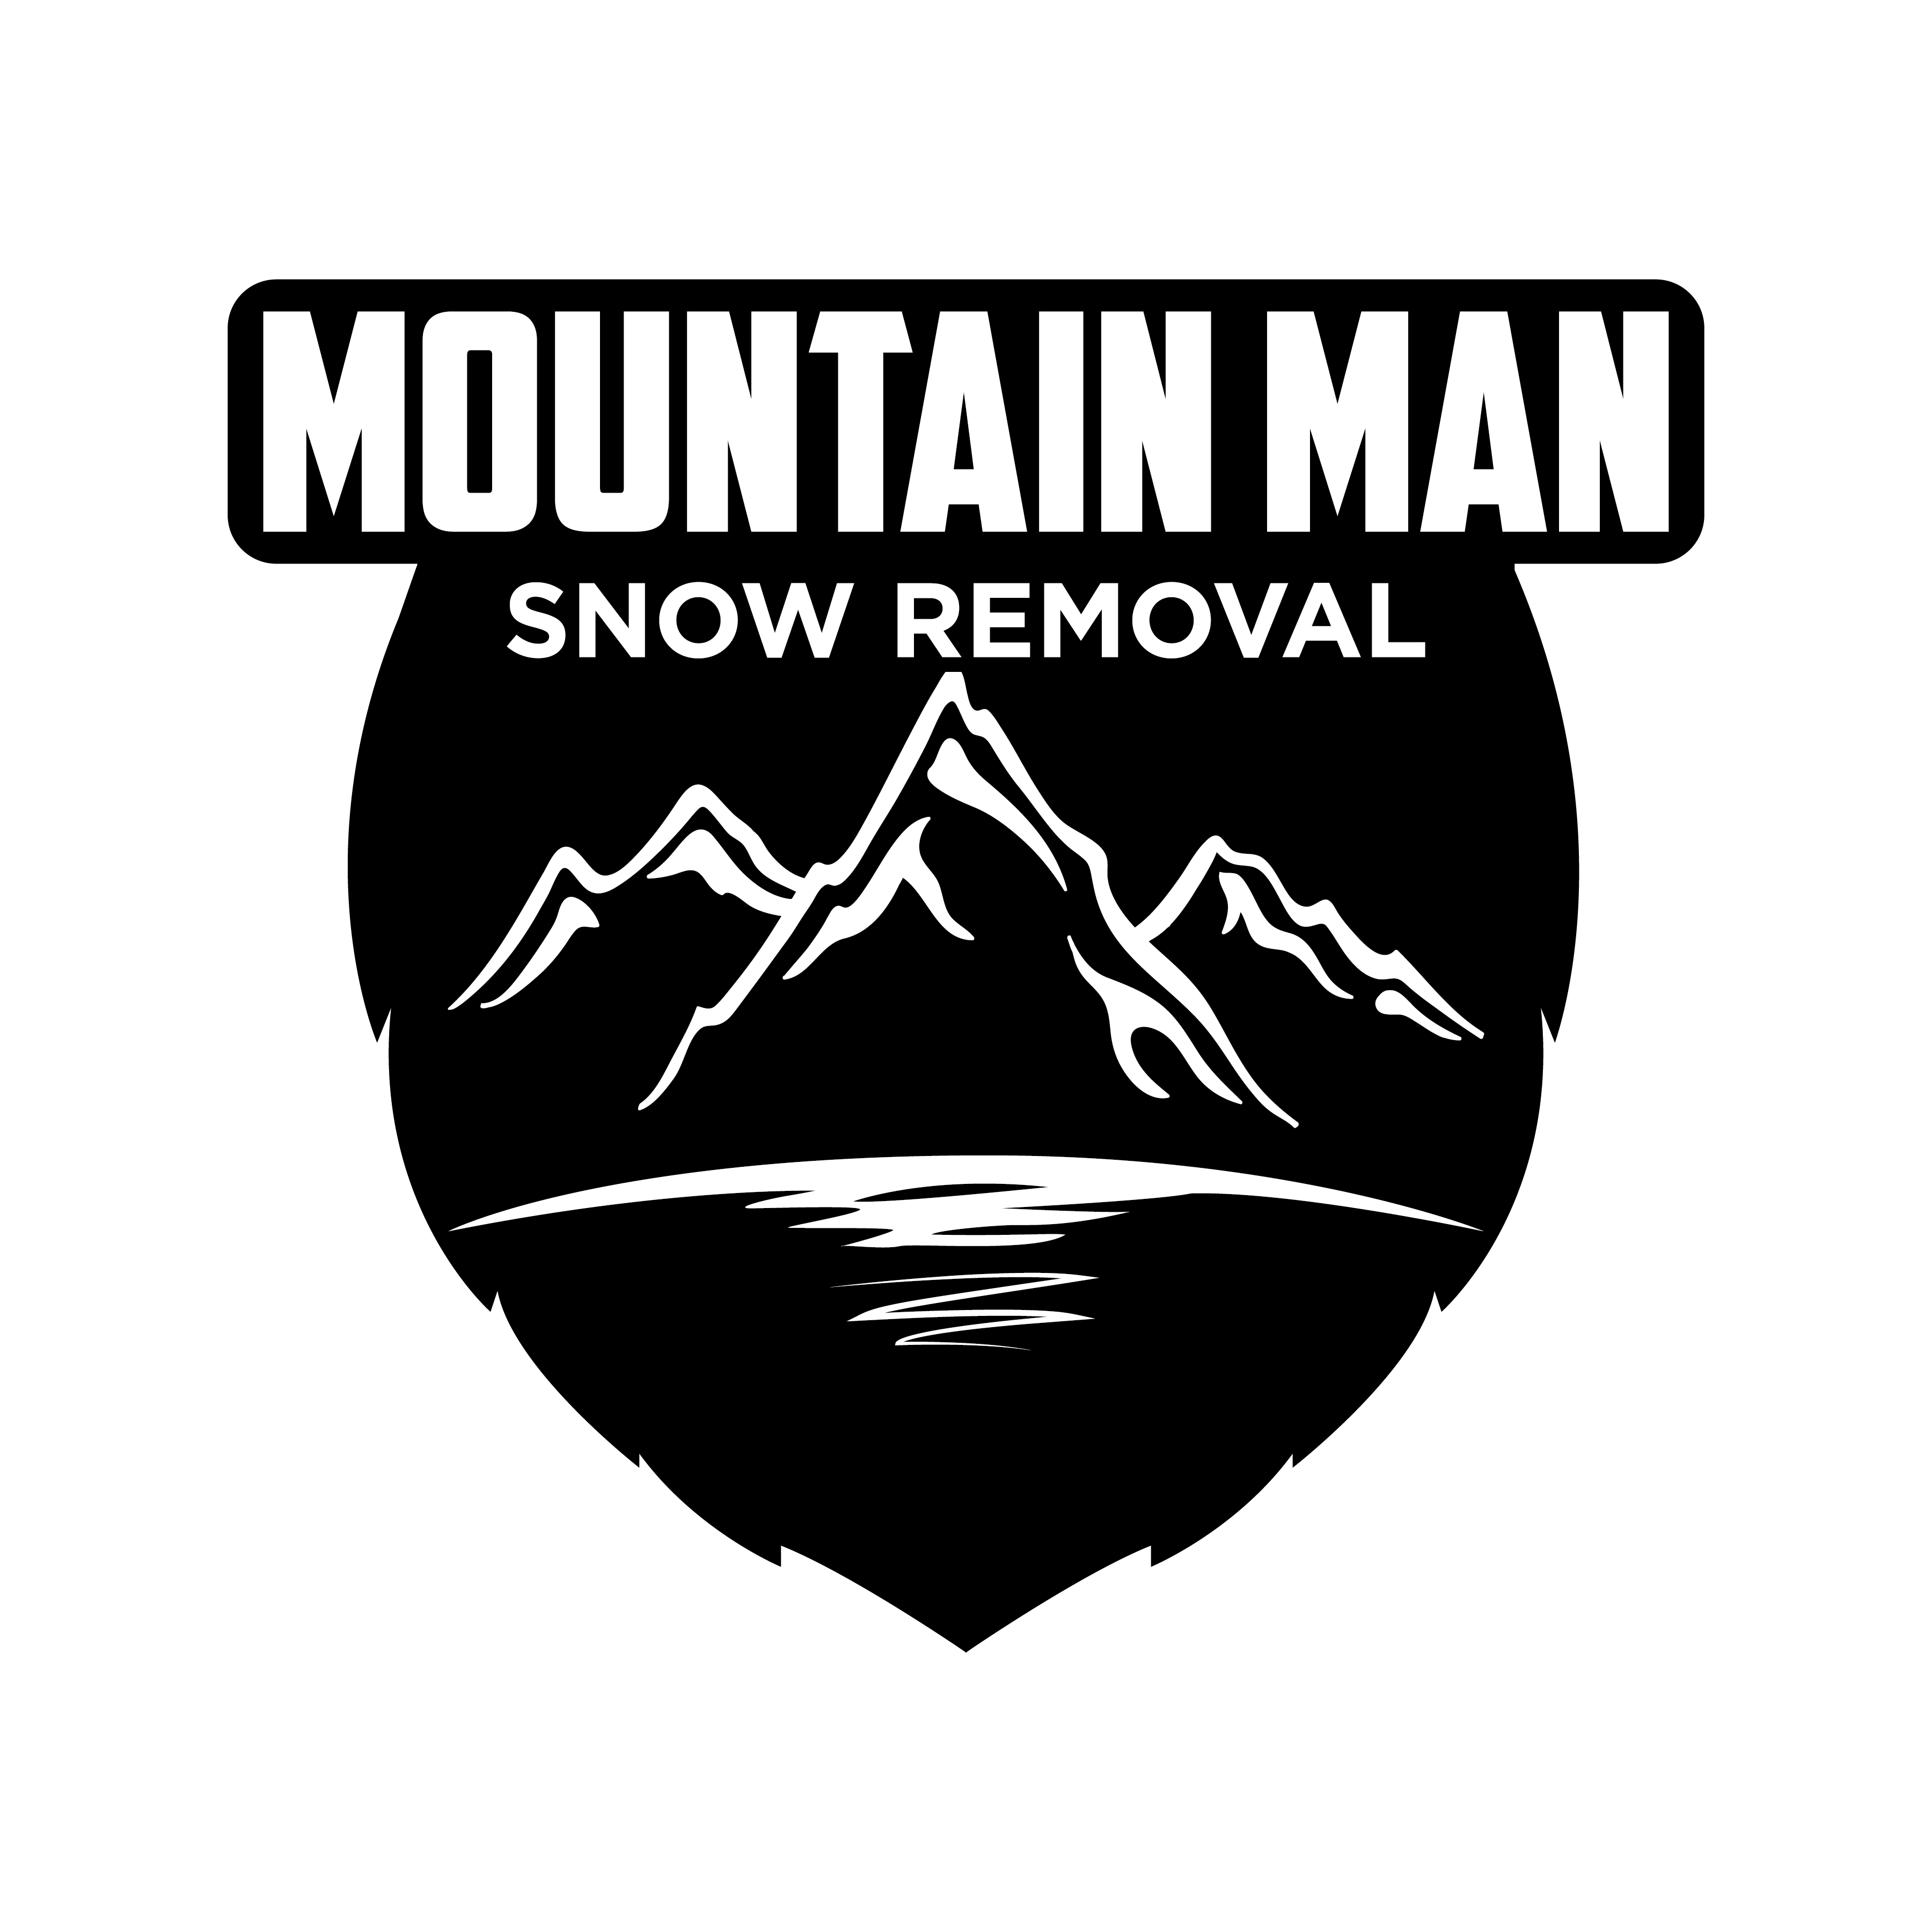 Mountain Man Snow Removal